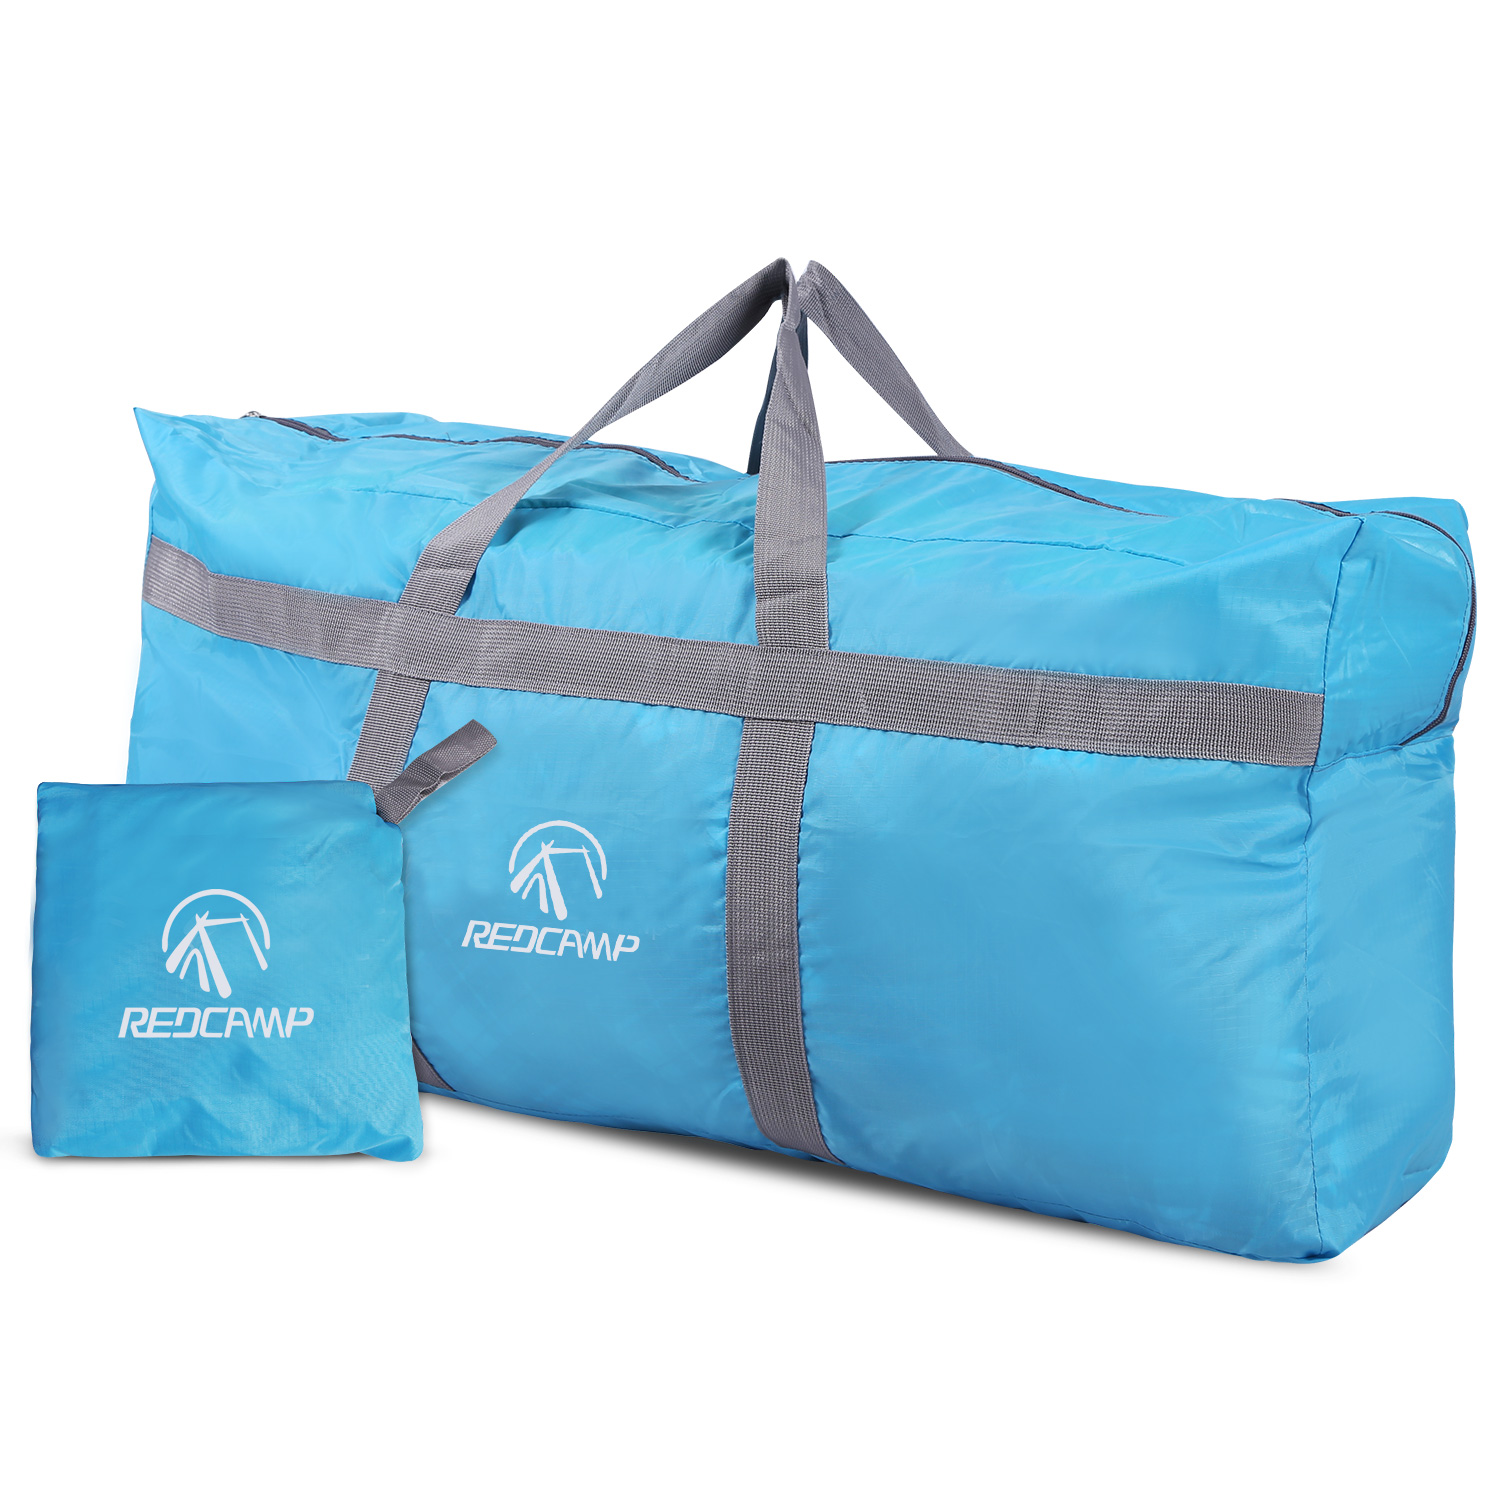 REDCAMP Extra Large Duffle Bag 96L Blue Lightweight, Waterproof Travel Duffel Bag Foldable for Men Women